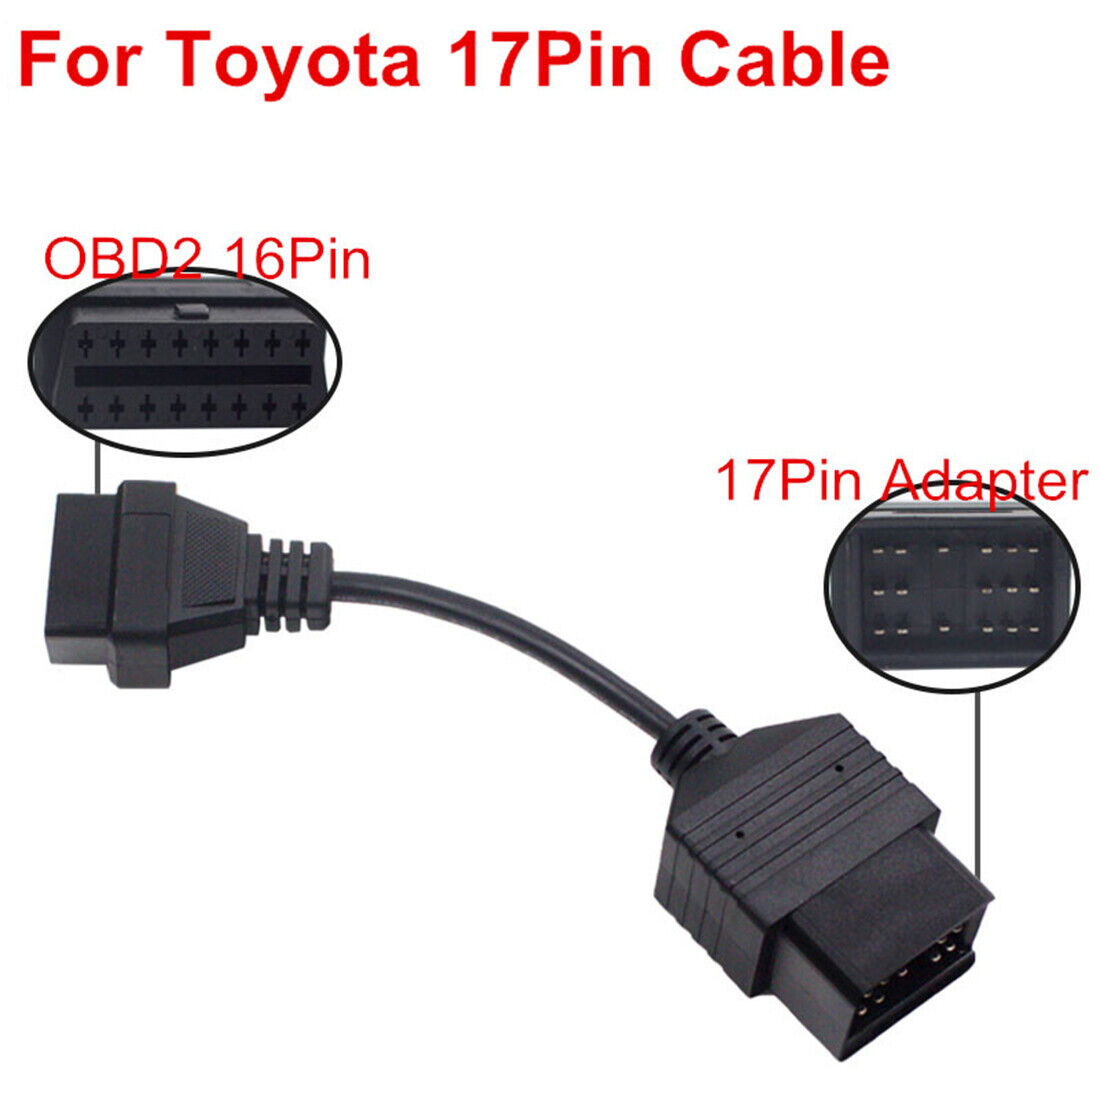 For Toyota Car Diagnostic Connector Adapter 17 Pin to 16 Pin OBD2 OBDII Cable